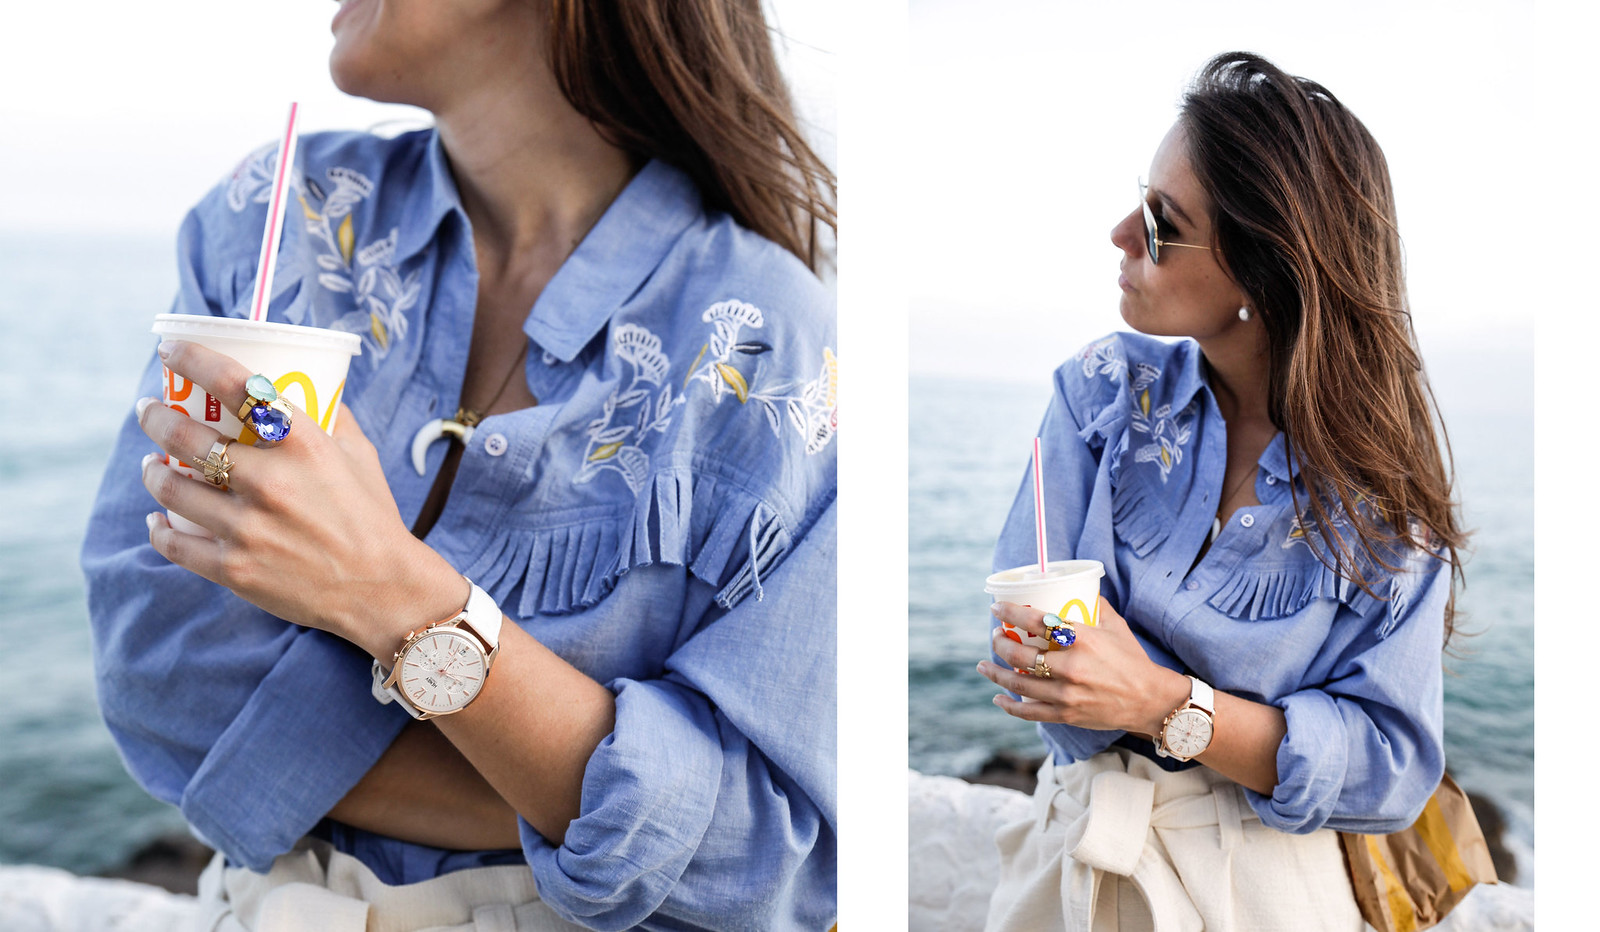 03_camisa_flecos_azul_mysundaymorning_fringed_shirt_fringed_theguestgirl_influencer_inspo_outft_summer_laura_santolaria_public_desire_denim_shoes_mc_donalds